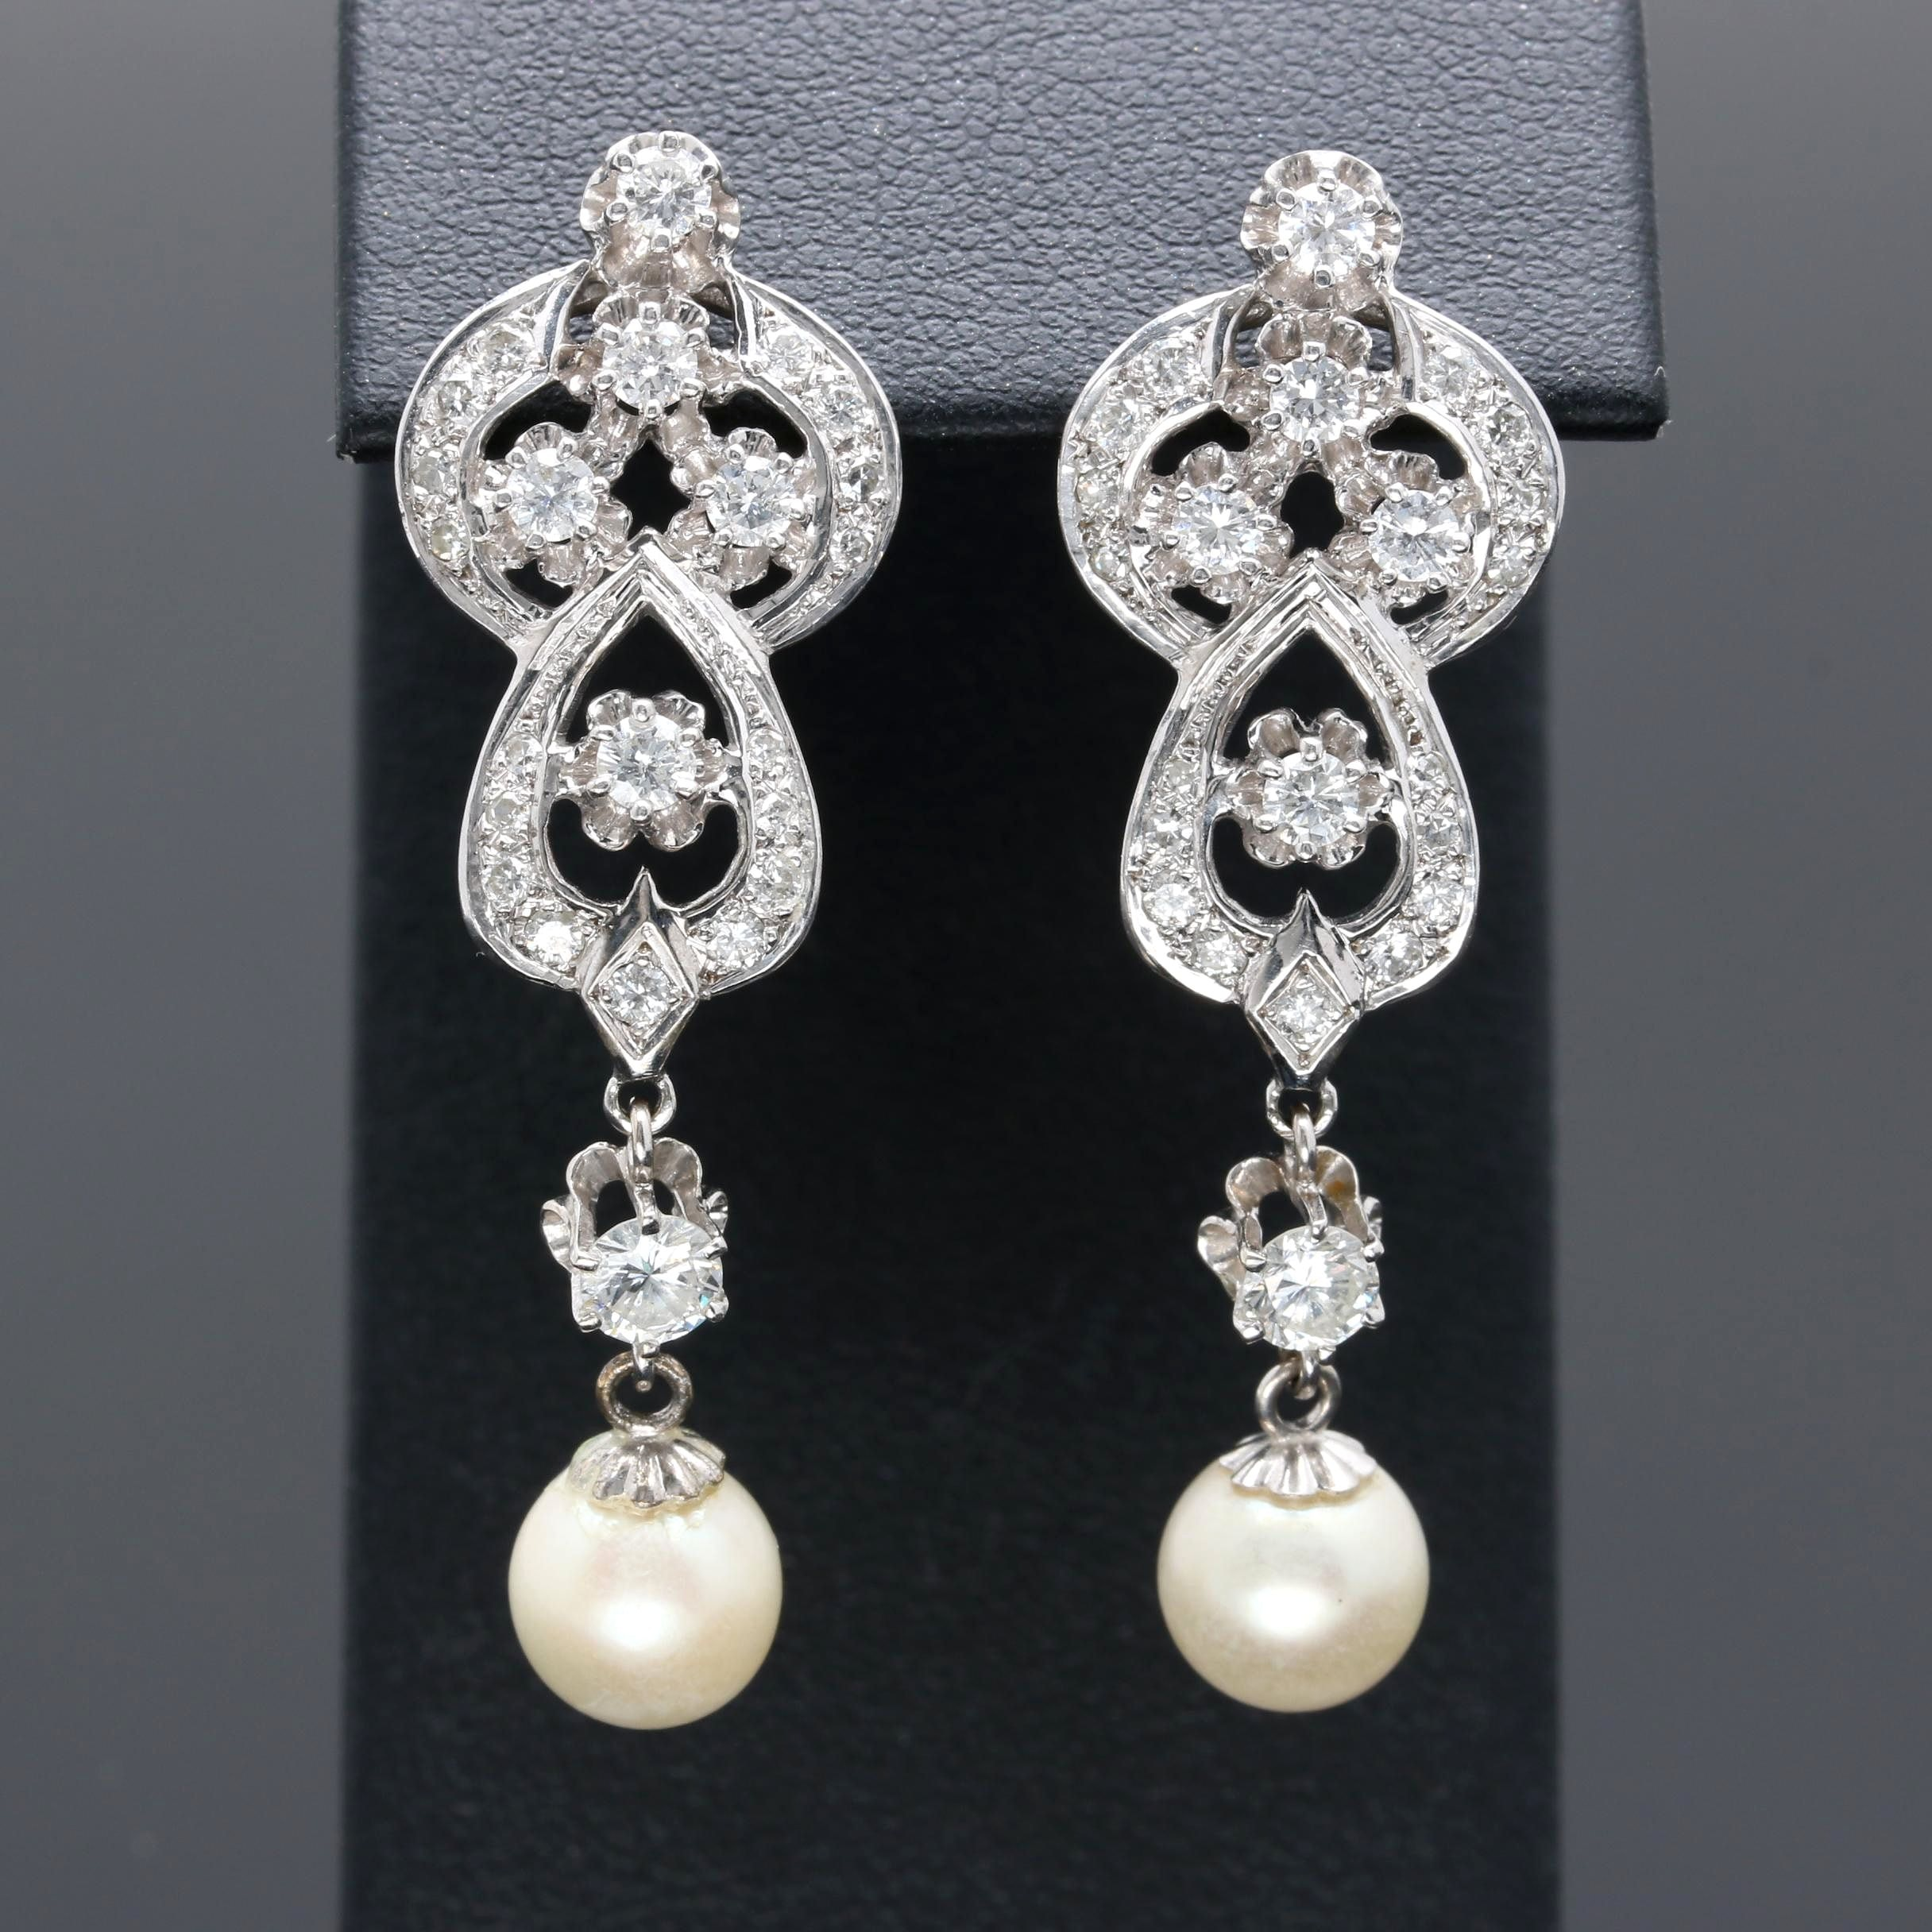 14K White Gold 1.81 CTW Diamond and Cultured Pearl Earrings